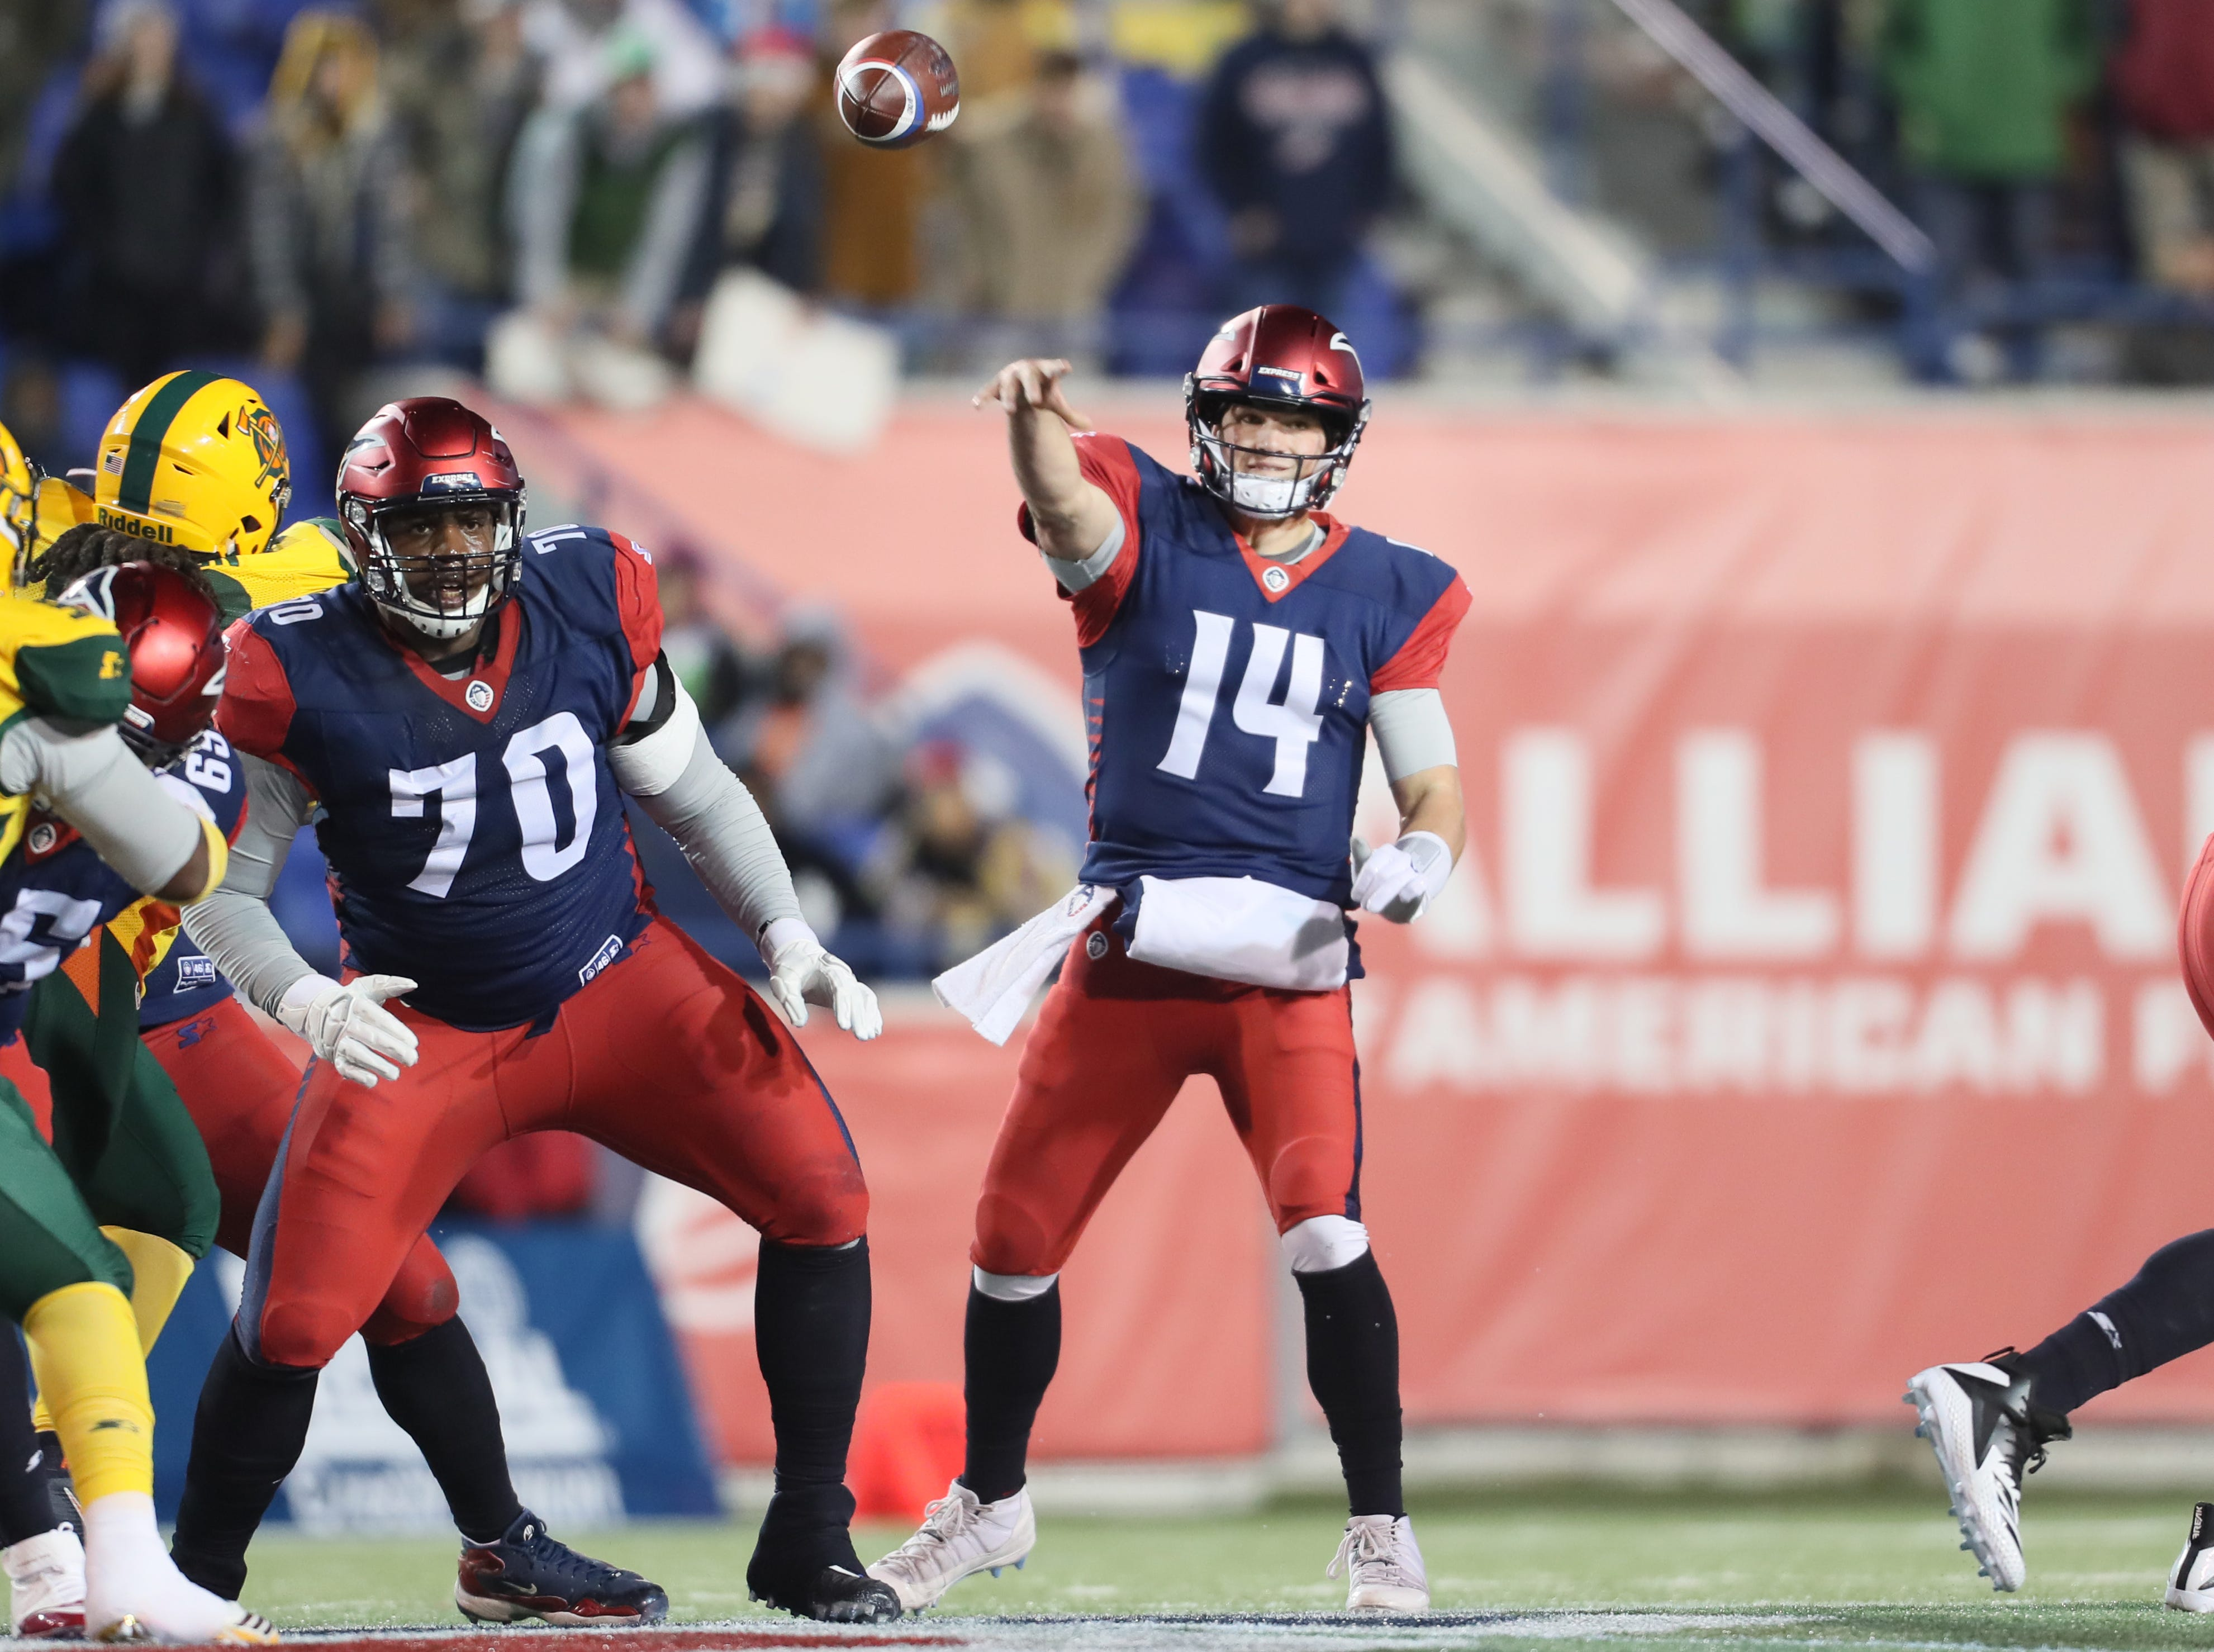 Memphis Express quarterback Christian Hackenberg throws the ball against the Arizona Hotshots during their game at the Liberty Bowl on Saturday, Feb. 16, 2019.